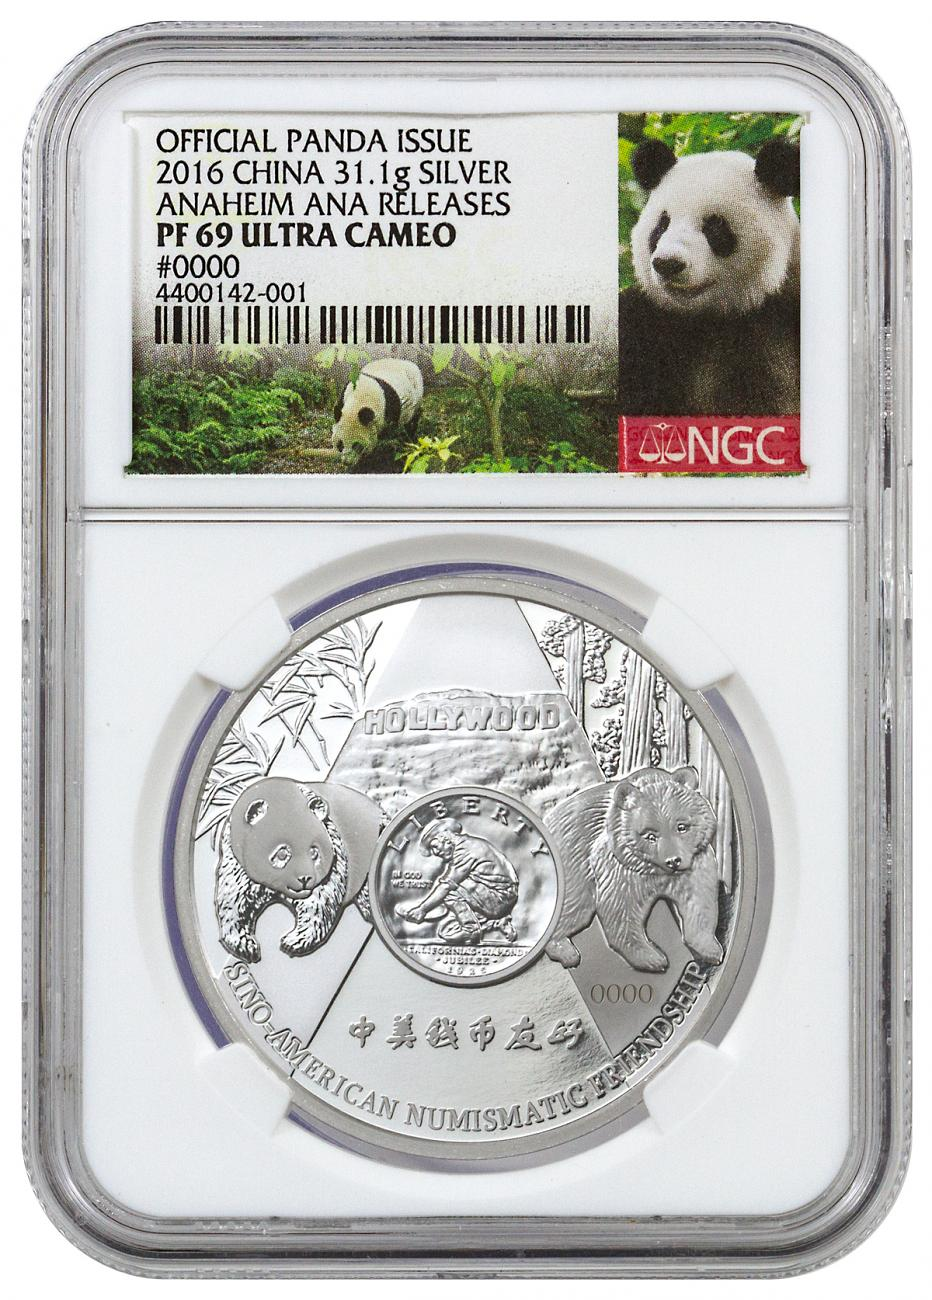 2016 China Anaheim ANA World's Fair of Money Silver Panda 1 oz Silver Proof Medal NGC PF69 UC (Panda Label)